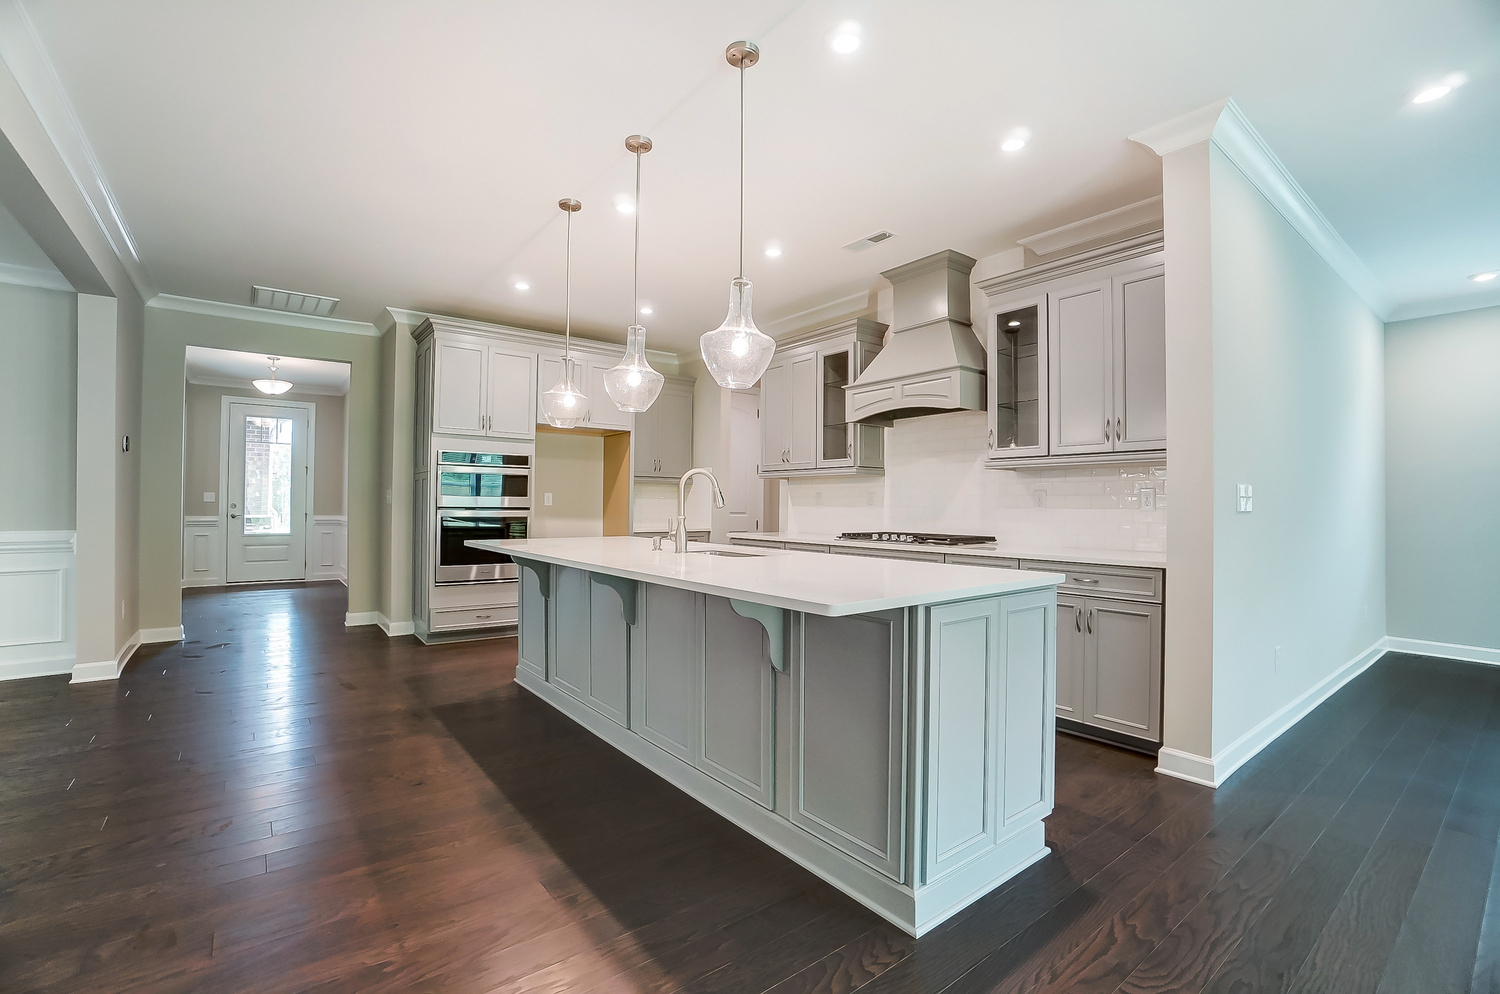 Astaire Plan Kitchen at Sonata at Mint Hill in Mint Hill North Carolina by Mattamy Homes